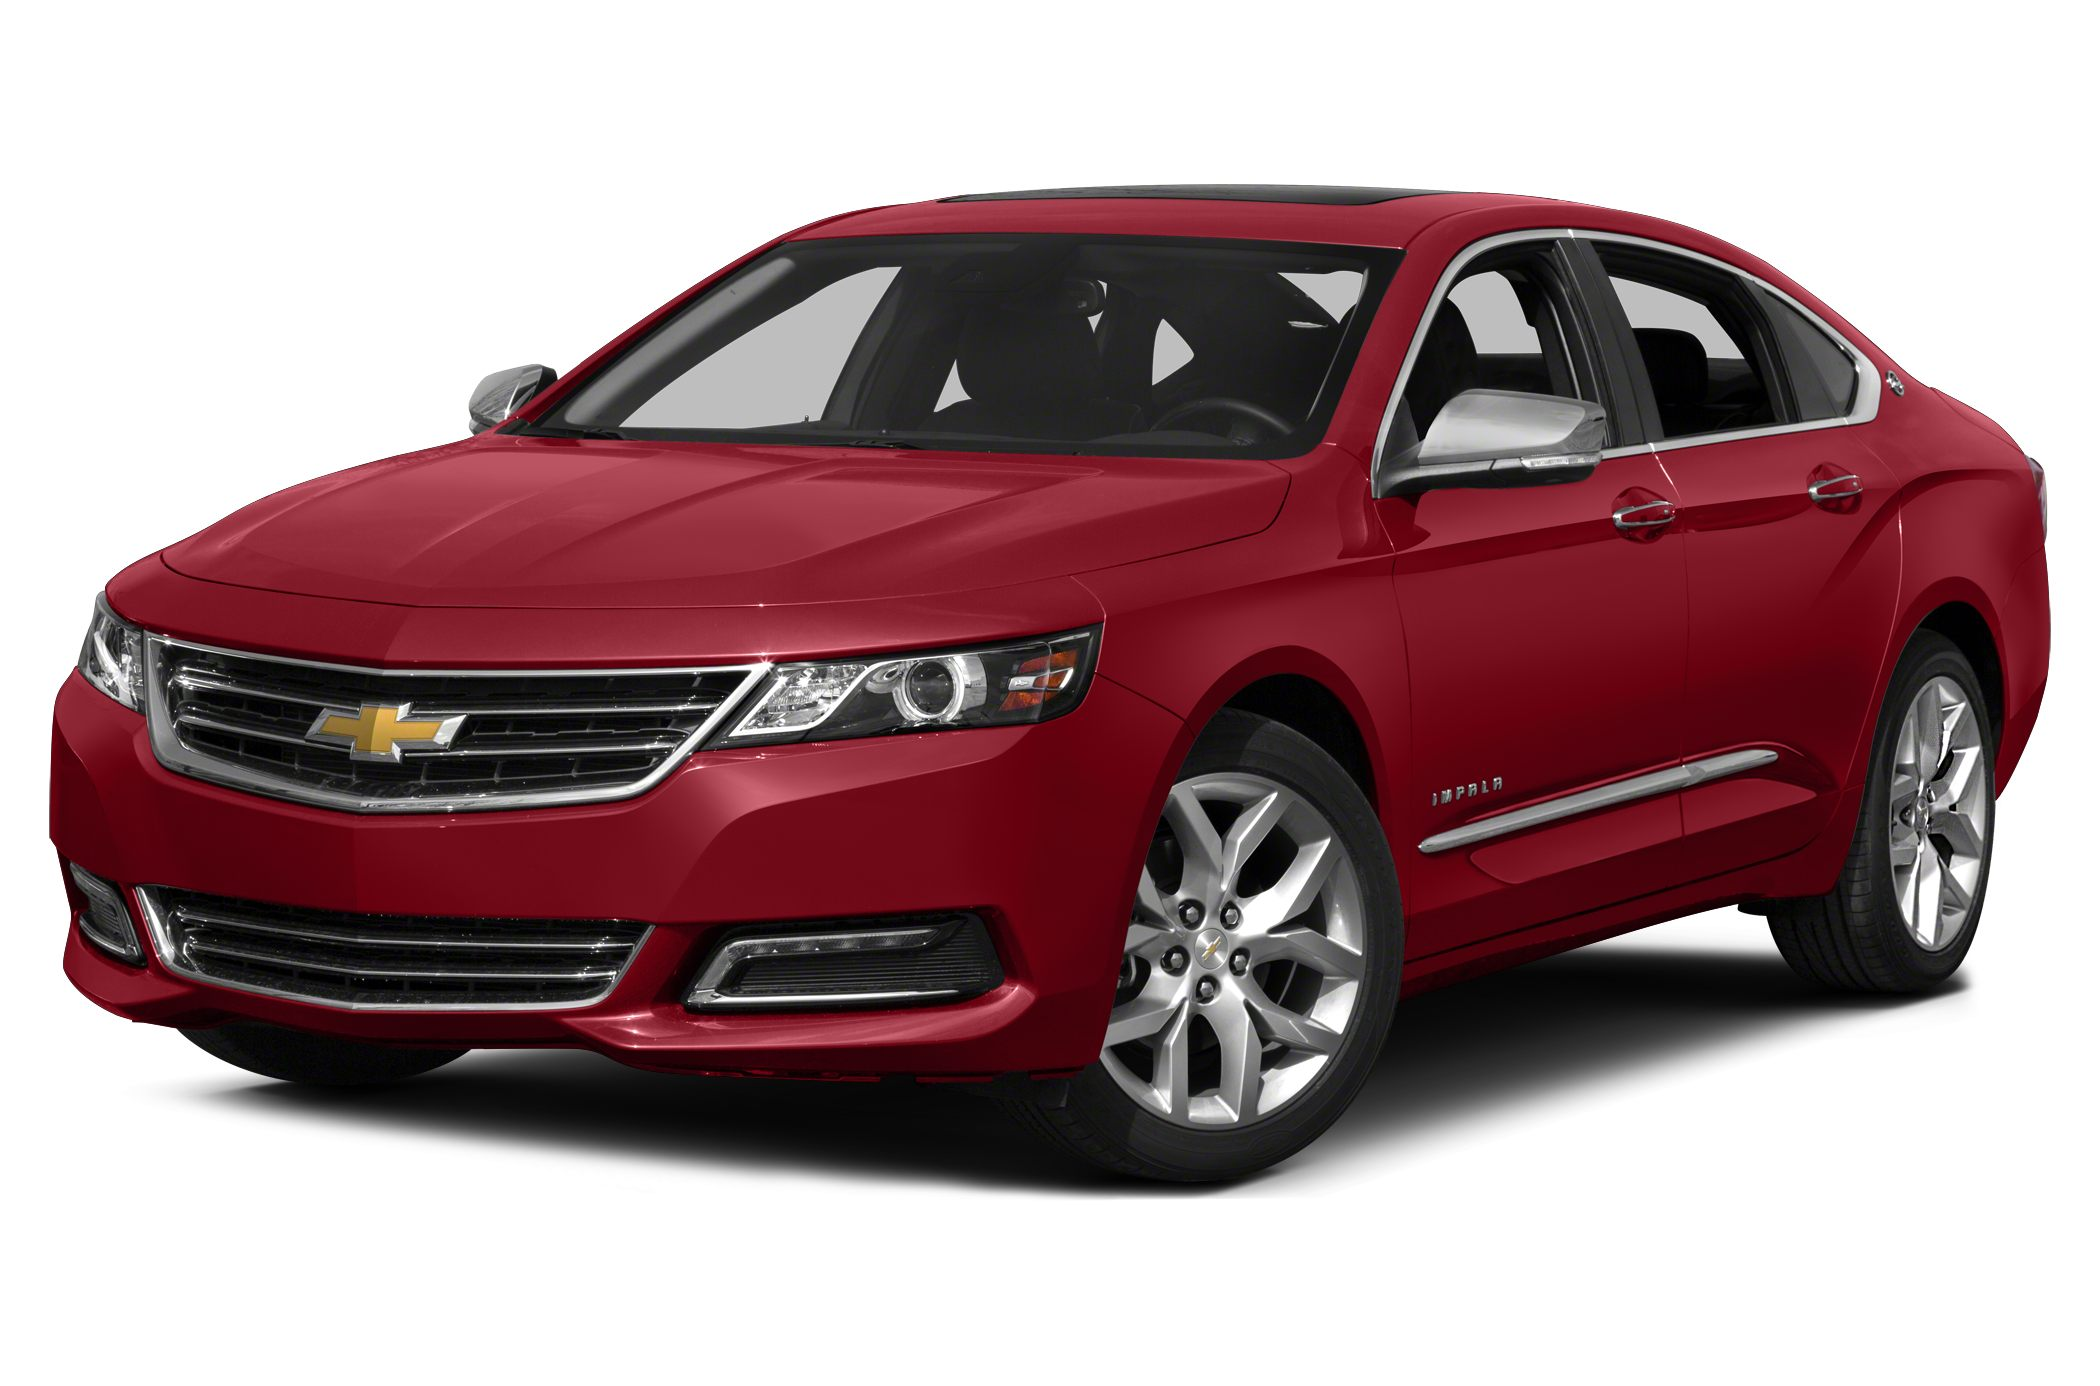 2015 Chevrolet Impala 2LT Sedan for sale in Columbus for $33,060 with 0 miles.